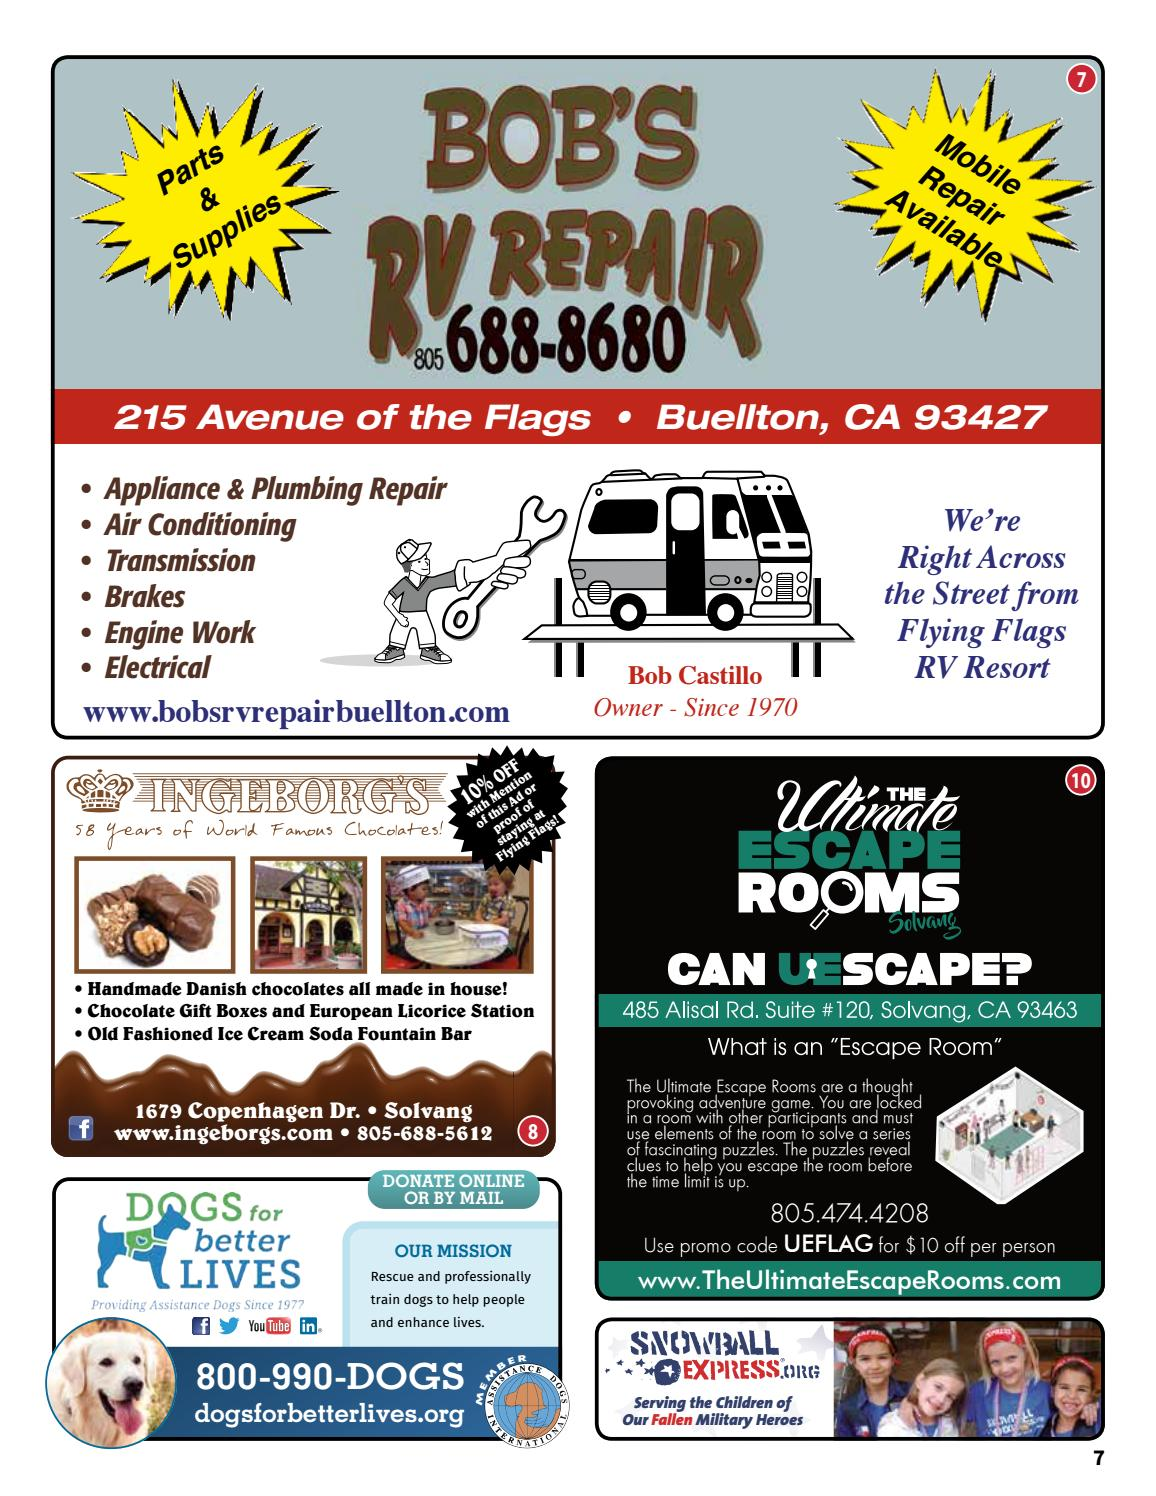 Flying Flags Rv Resort By Ags Texas Advertising Issuu